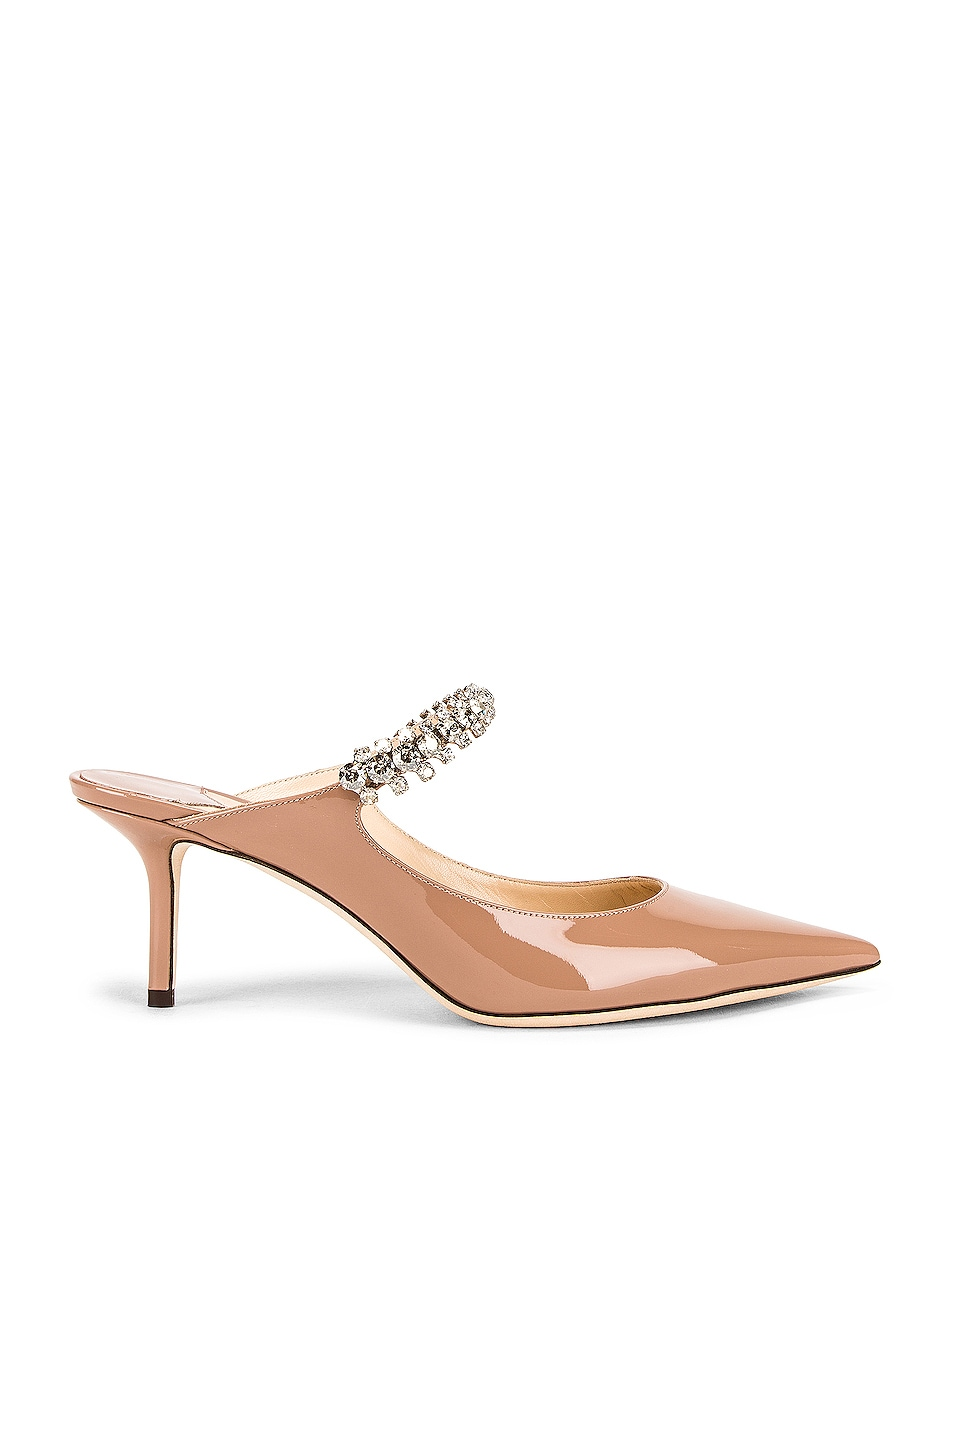 Image 1 of Jimmy Choo Patent Leather Bing 65 Heel in Ballet Pink